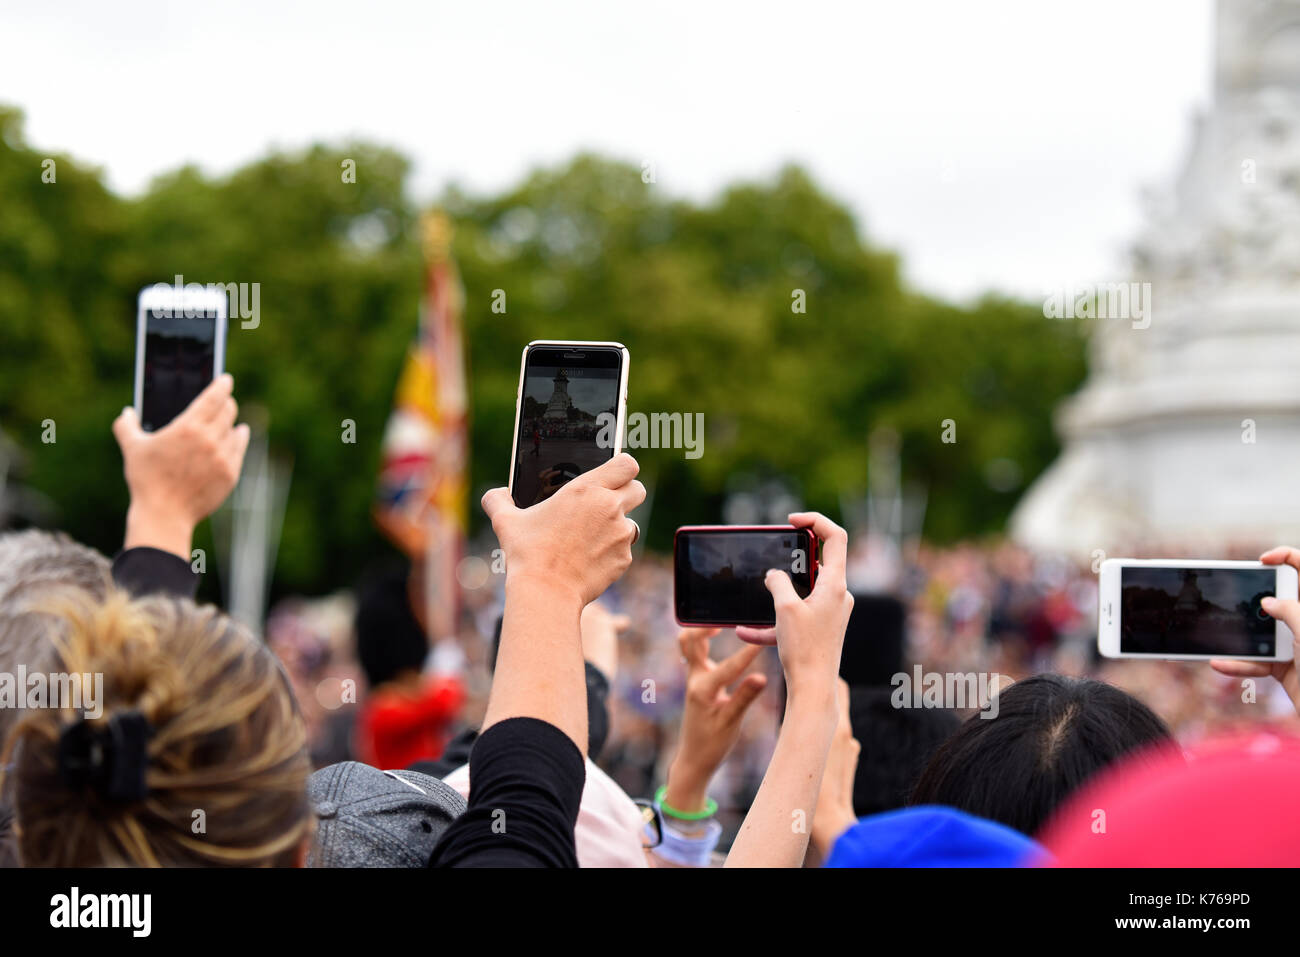 Quantity of mobile phone cameras raised to film and photograph the changing of the guard passing the Victoria Memorial in London, UK. Smart phones - Stock Image